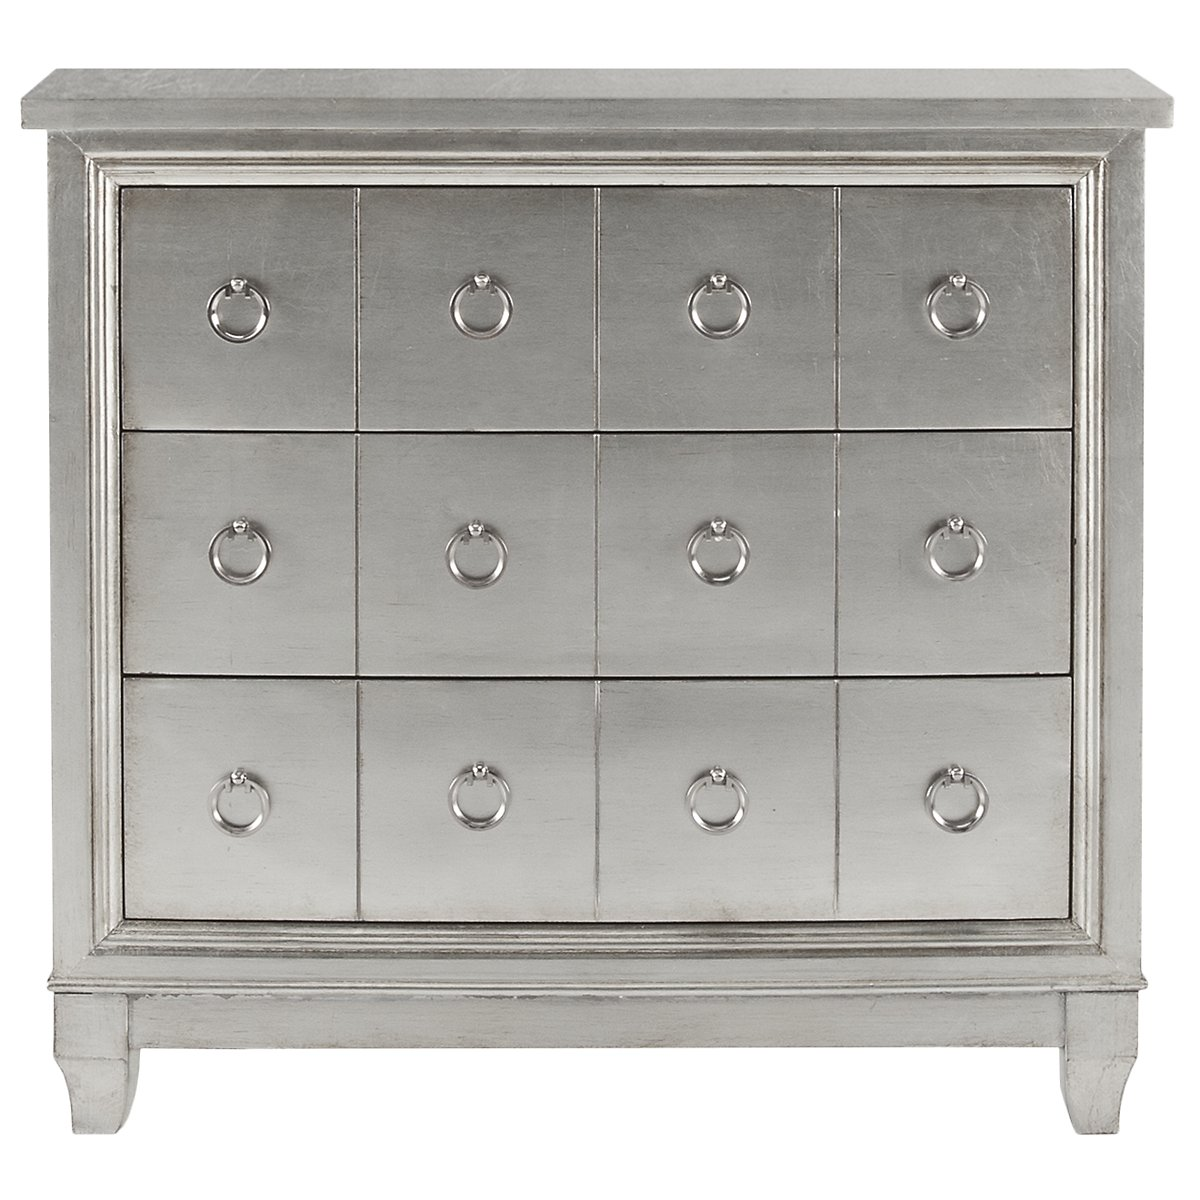 Accent Pieces For Home: City Furniture: Adria Silver Accent Chest